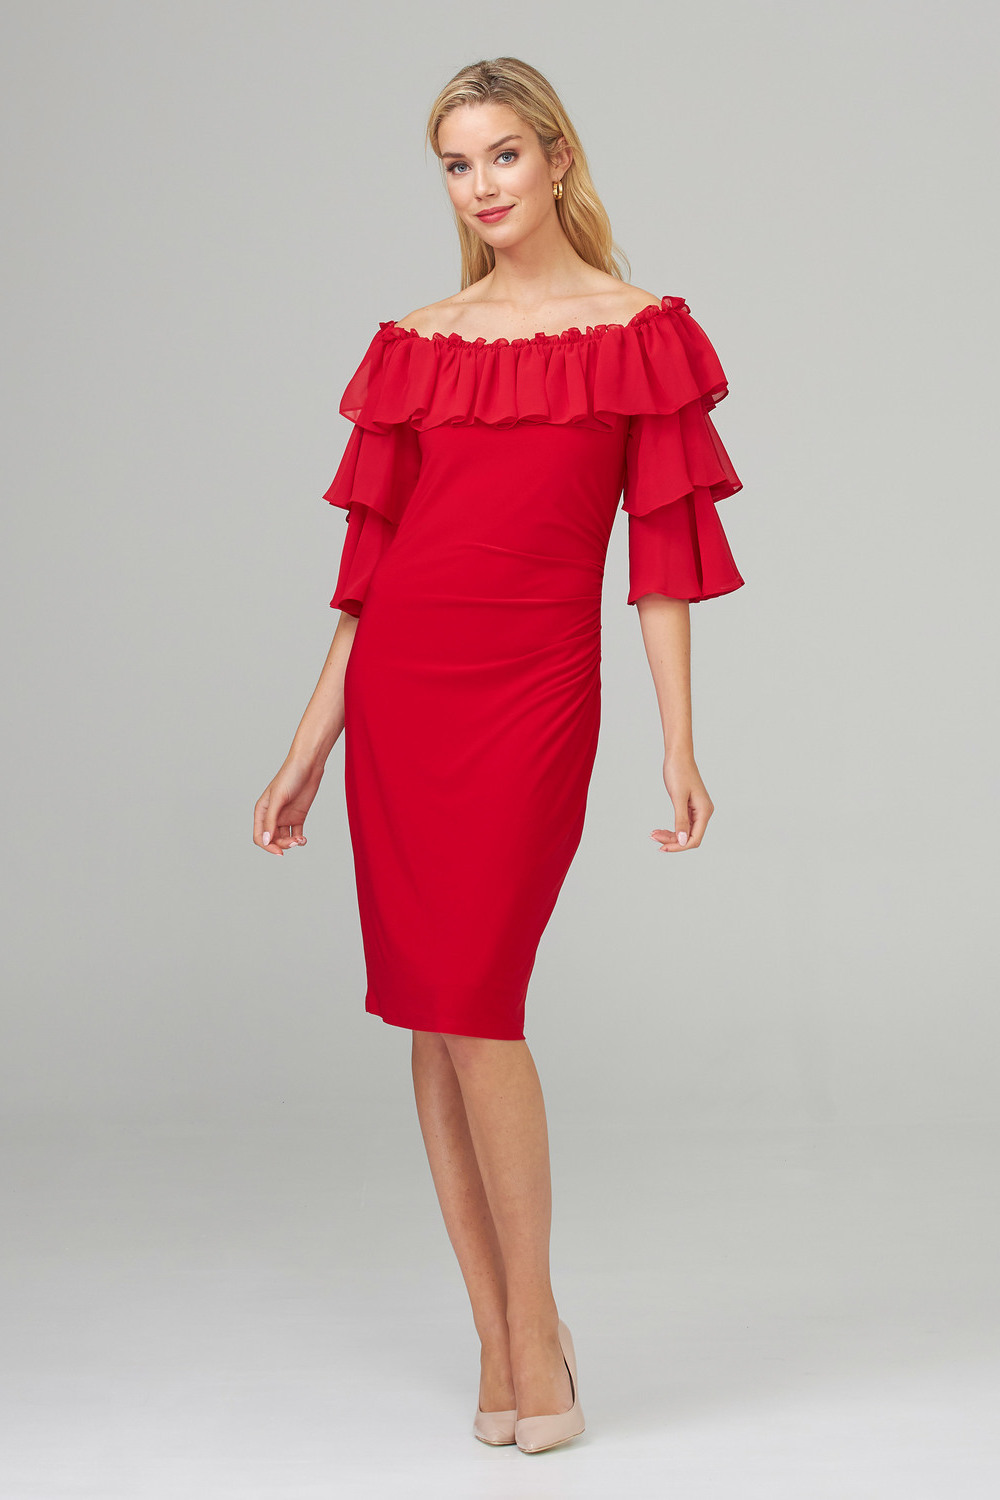 Joseph Ribkoff Robes Rouge A Levres 173 Style 201002